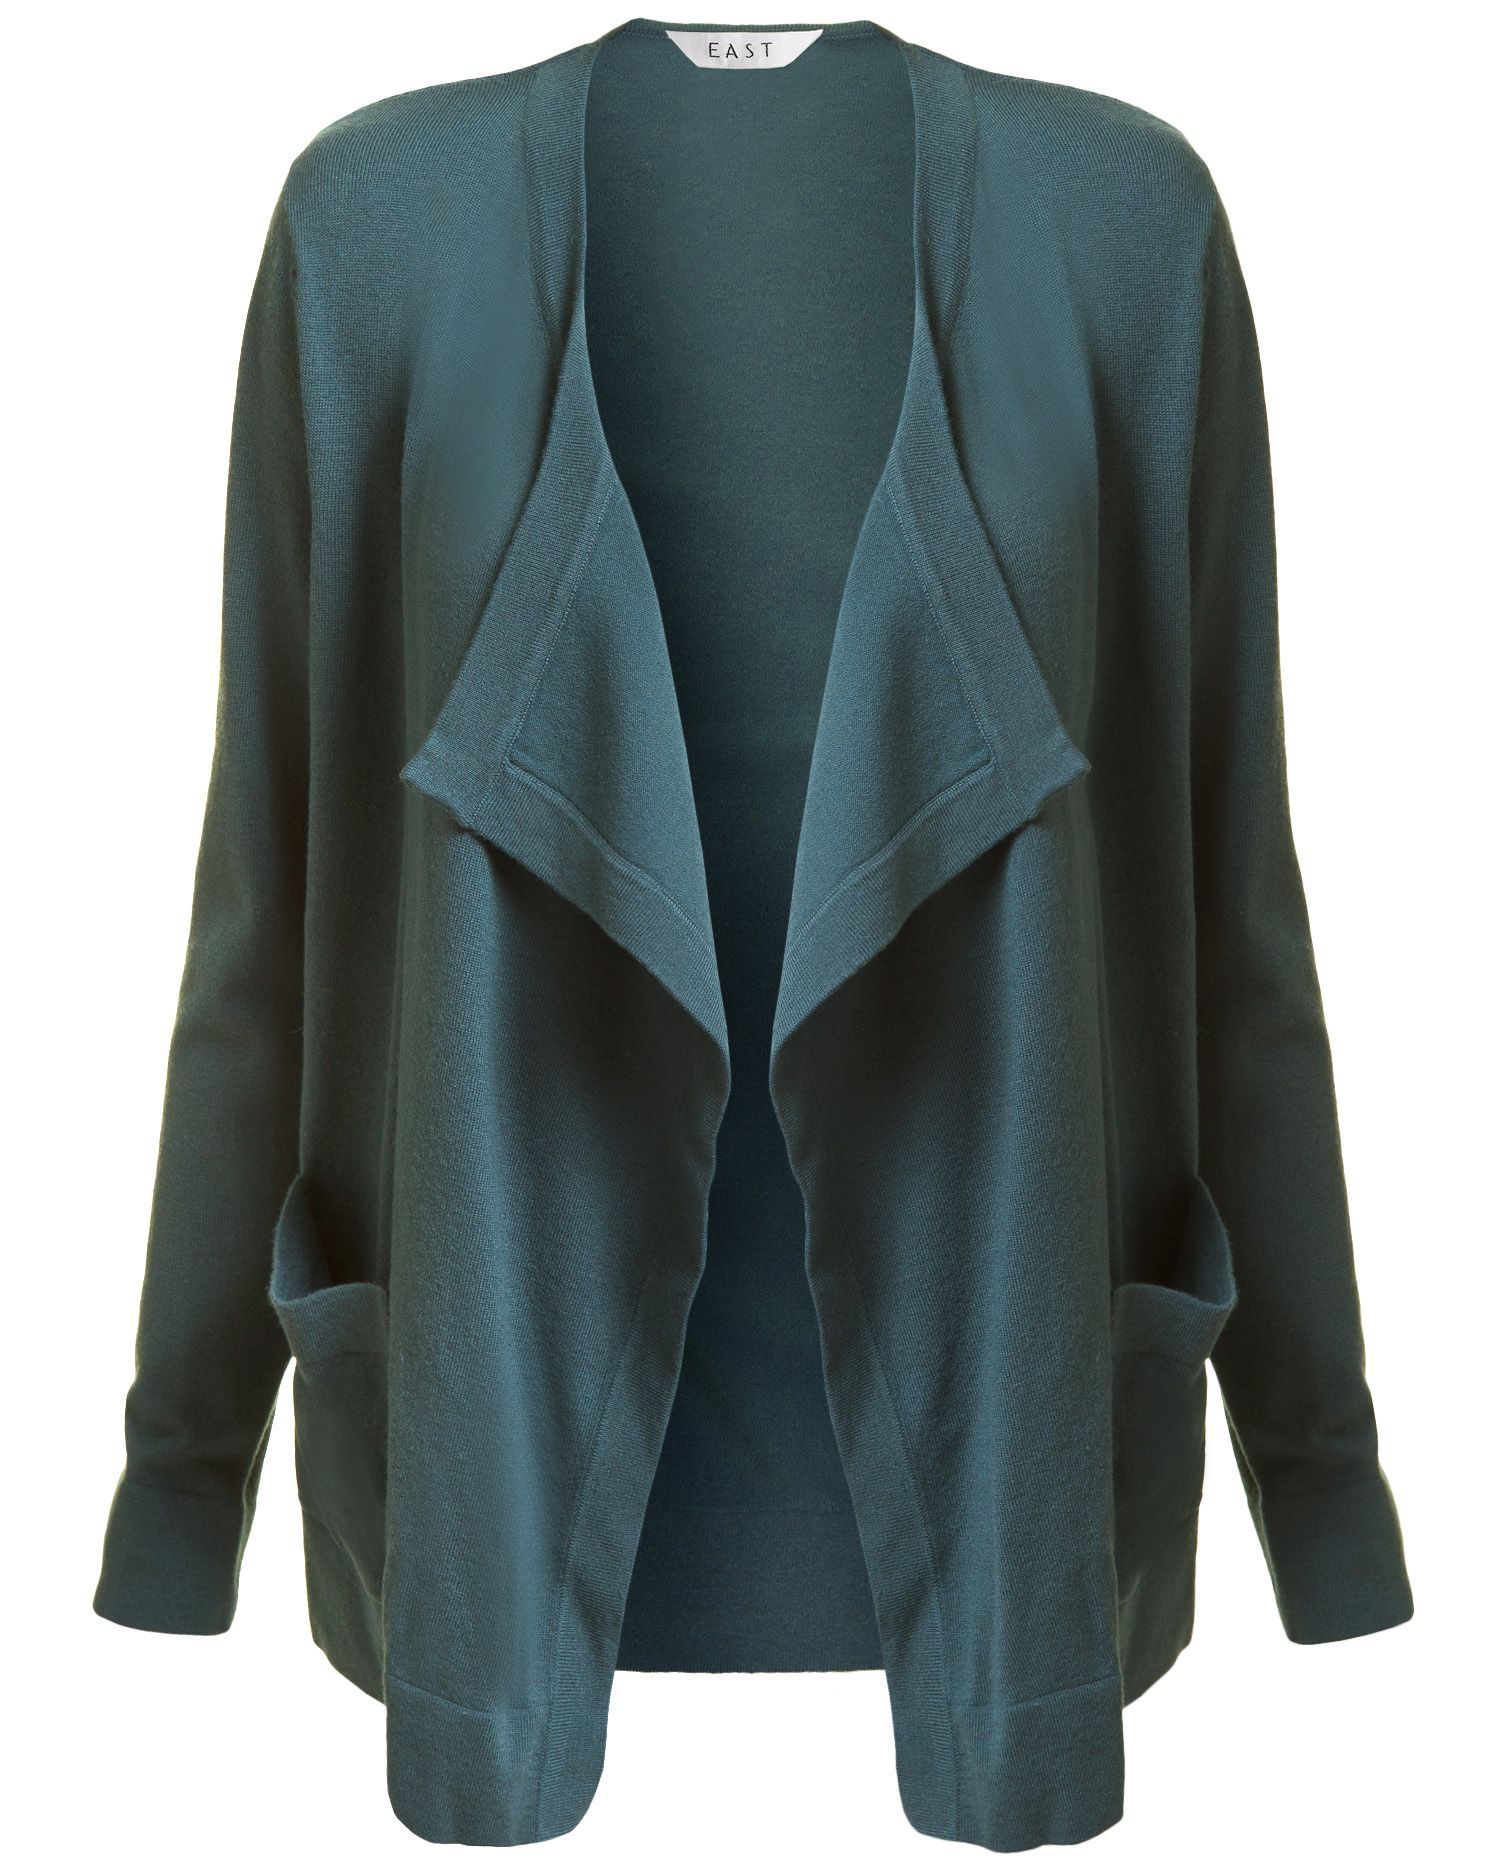 Women&#x27;s New Ros Pocket Cardigan, Aqua - pattern: plain; neckline: waterfall neck; hip detail: side pockets at hip, front pockets at hip; length: below the bottom; predominant colour: teal; occasions: casual; style: standard; fibres: polyester/polyamide - stretch; material texture: jersey; trends: aquatic; sleeve length: long sleeve; sleeve style: standard; pattern type: knitted - other; pattern size: standard; texture group: jersey - stretchy/drapey